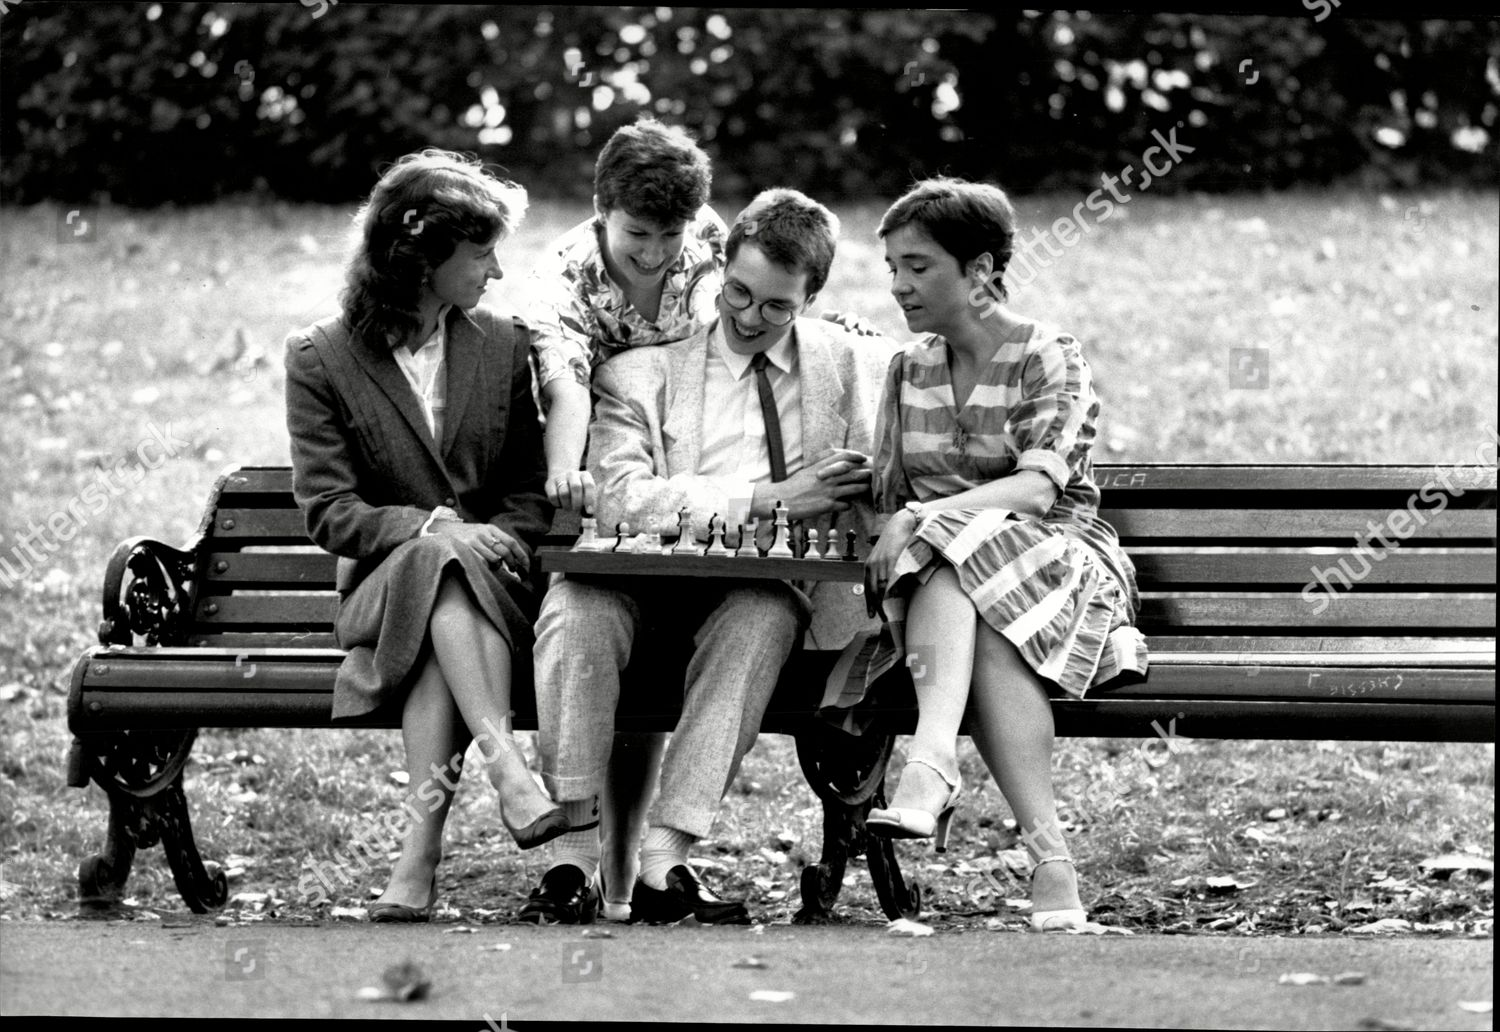 British Speed Chess Championship Grandmaster Nigel Short Playing Chess In The Park With L-r Susan Arkell Sheila Jackson And Dr Jana Miles. Courtesy of Shutterstock